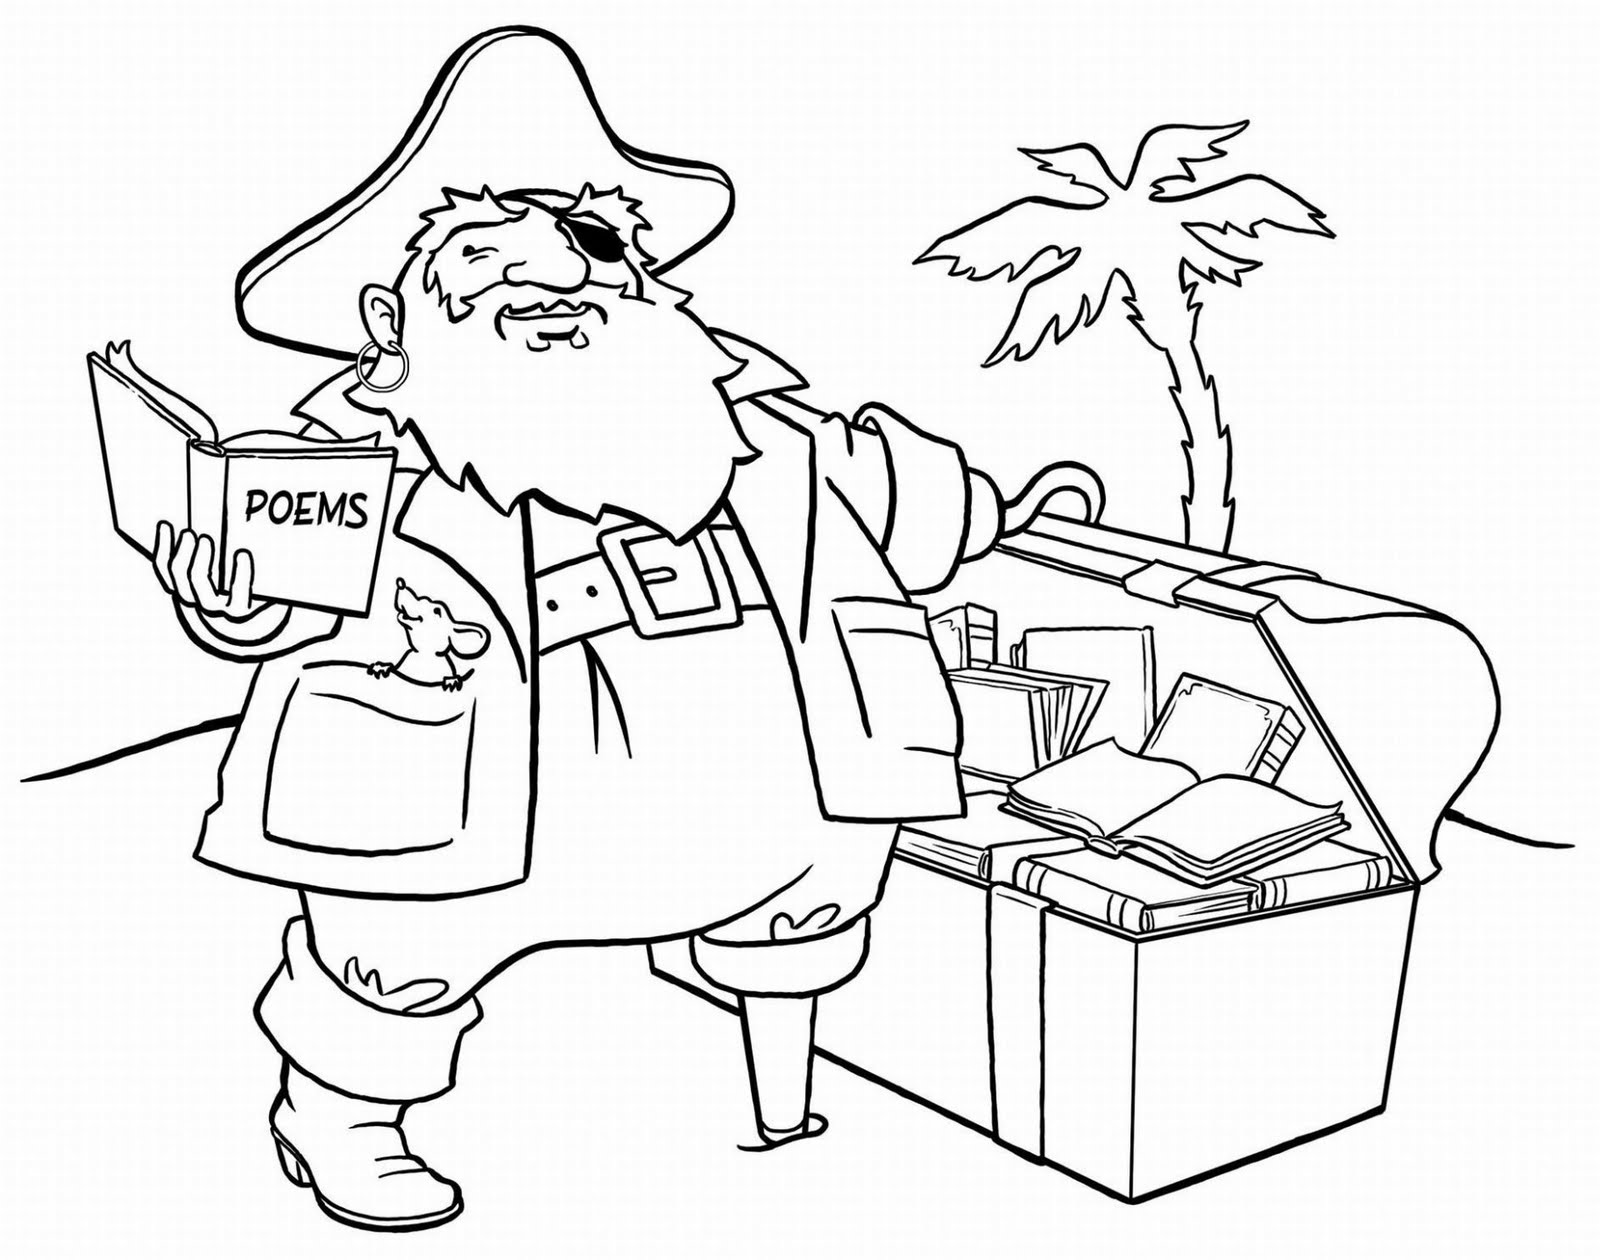 pirates pictures to colour pirate colouring pages for kids in the playroom colour pictures to pirates